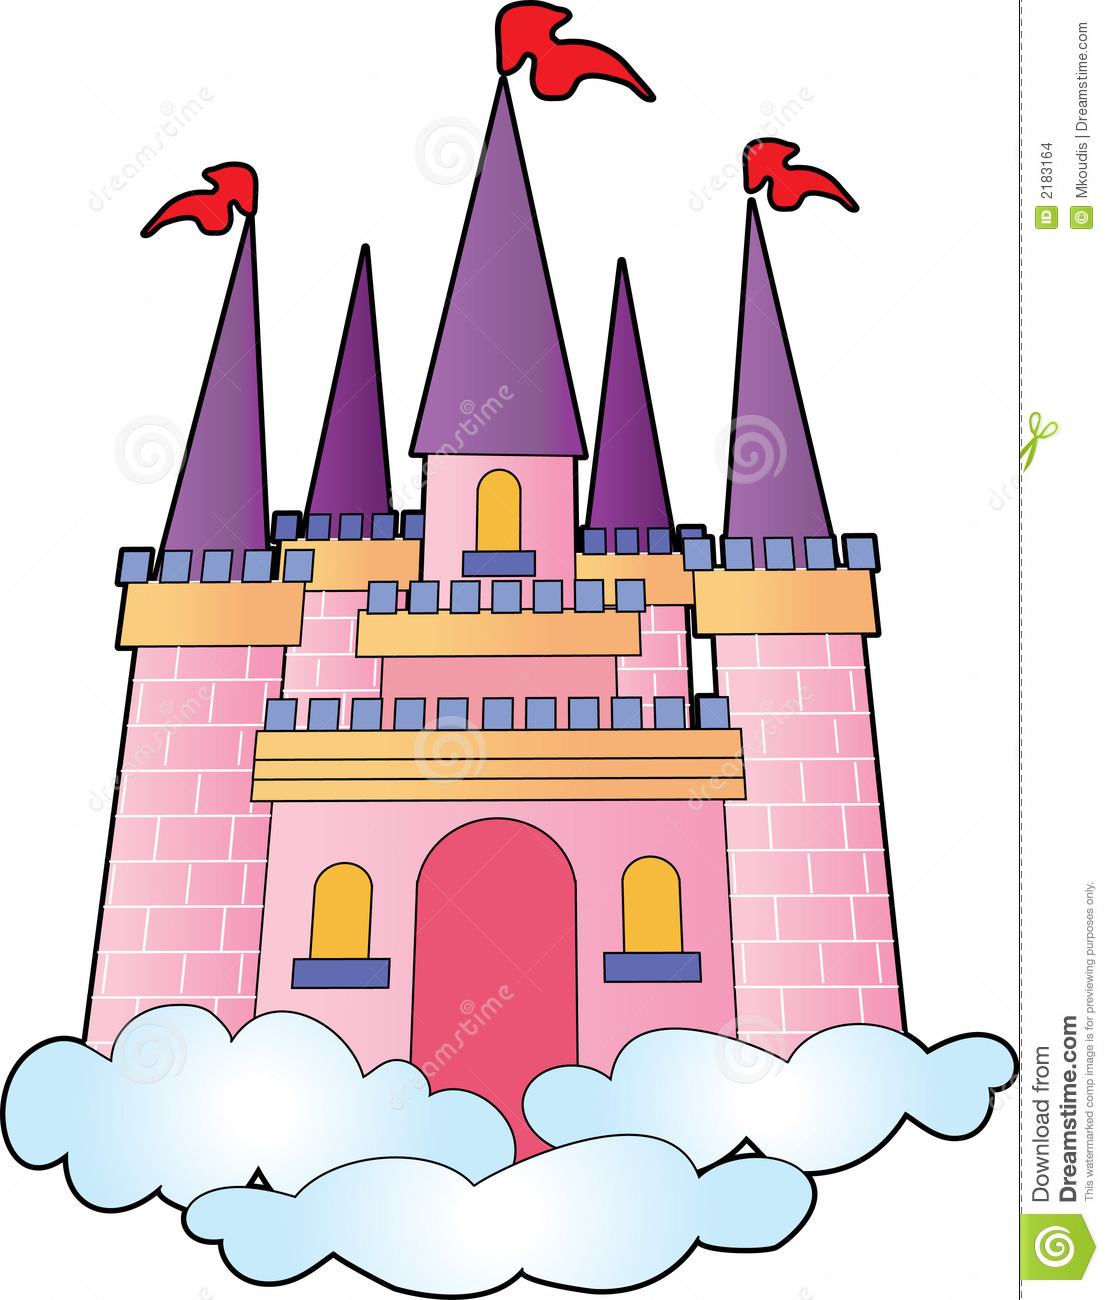 Castle clipart #7, Download drawings